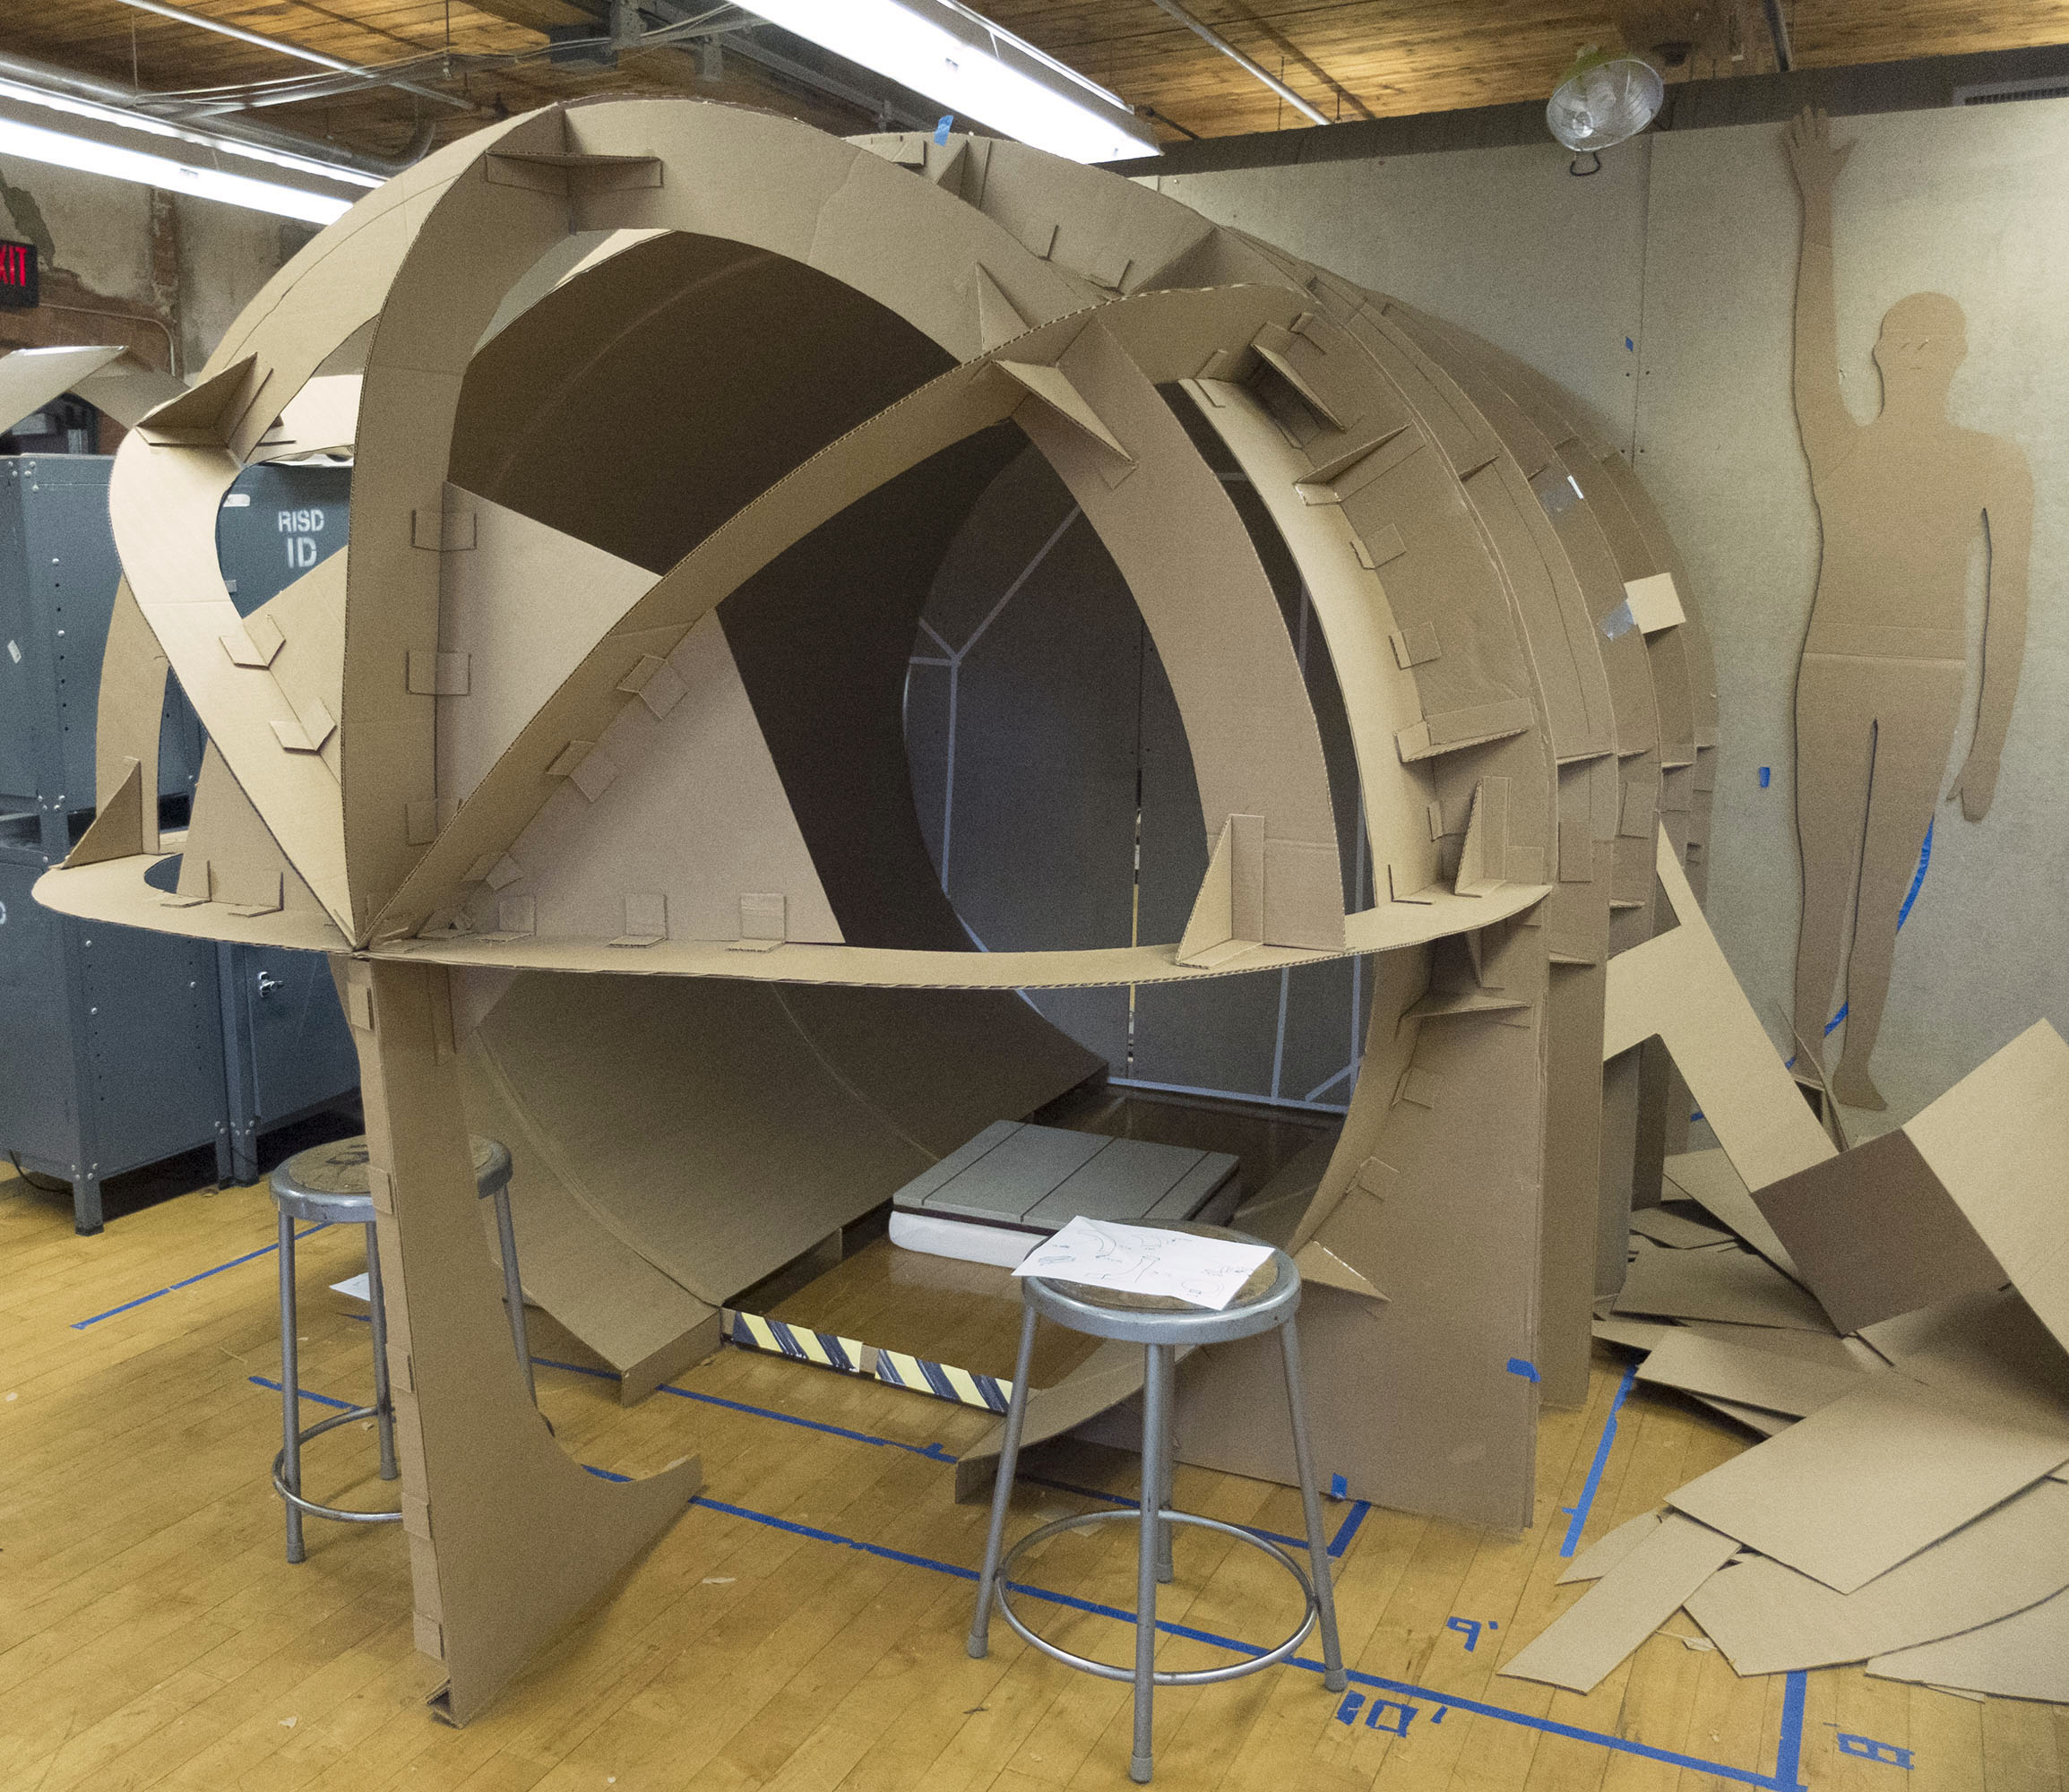 Full scale cardboard model, used for determining final dimensions and placement of equipment